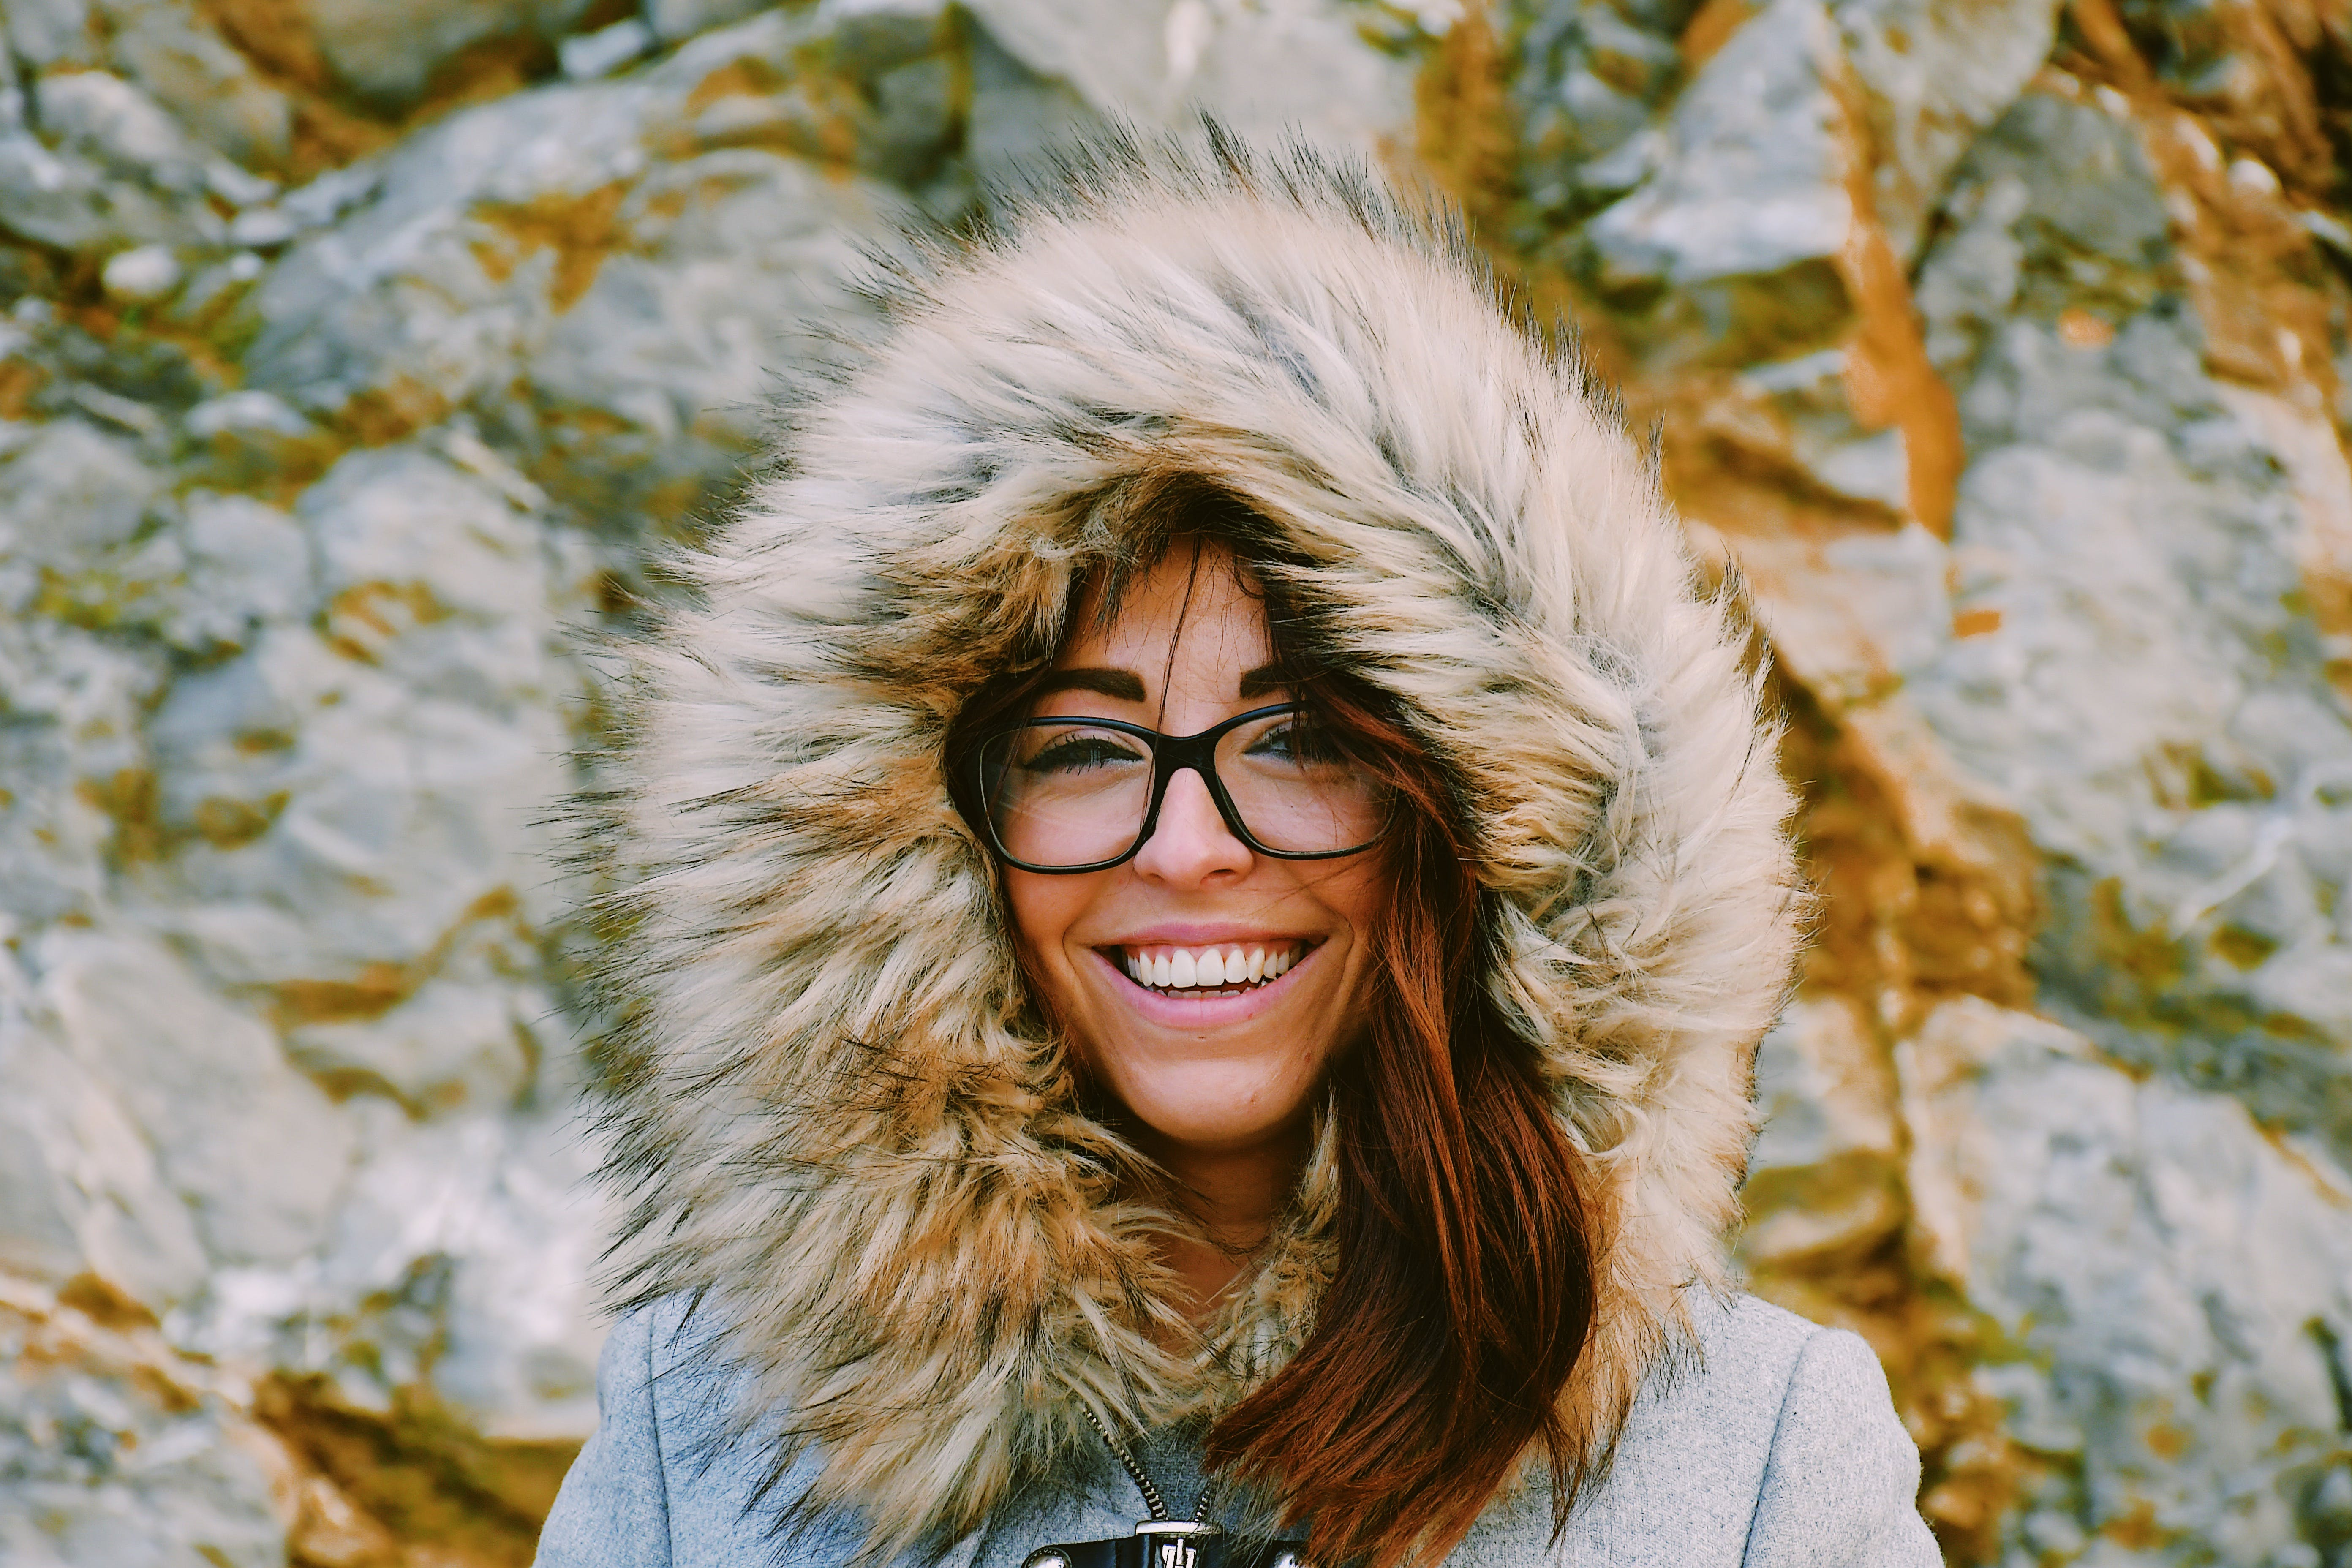 Woman Wearing Eyeglasses While Smiling Near Rock Formation